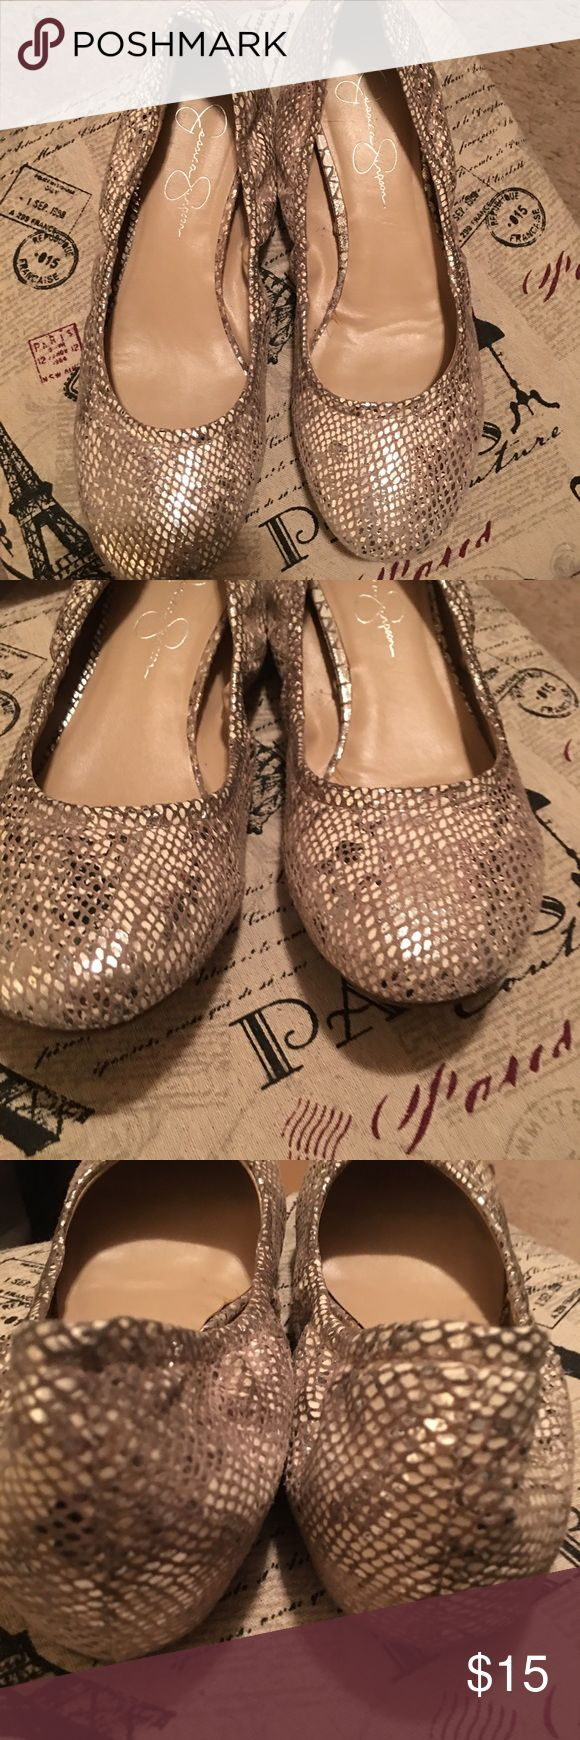 Jessica Simpson Flat Shoes Jessica Simpson Flat Shoes Jessica Simpson Shoes Flats & Loafers